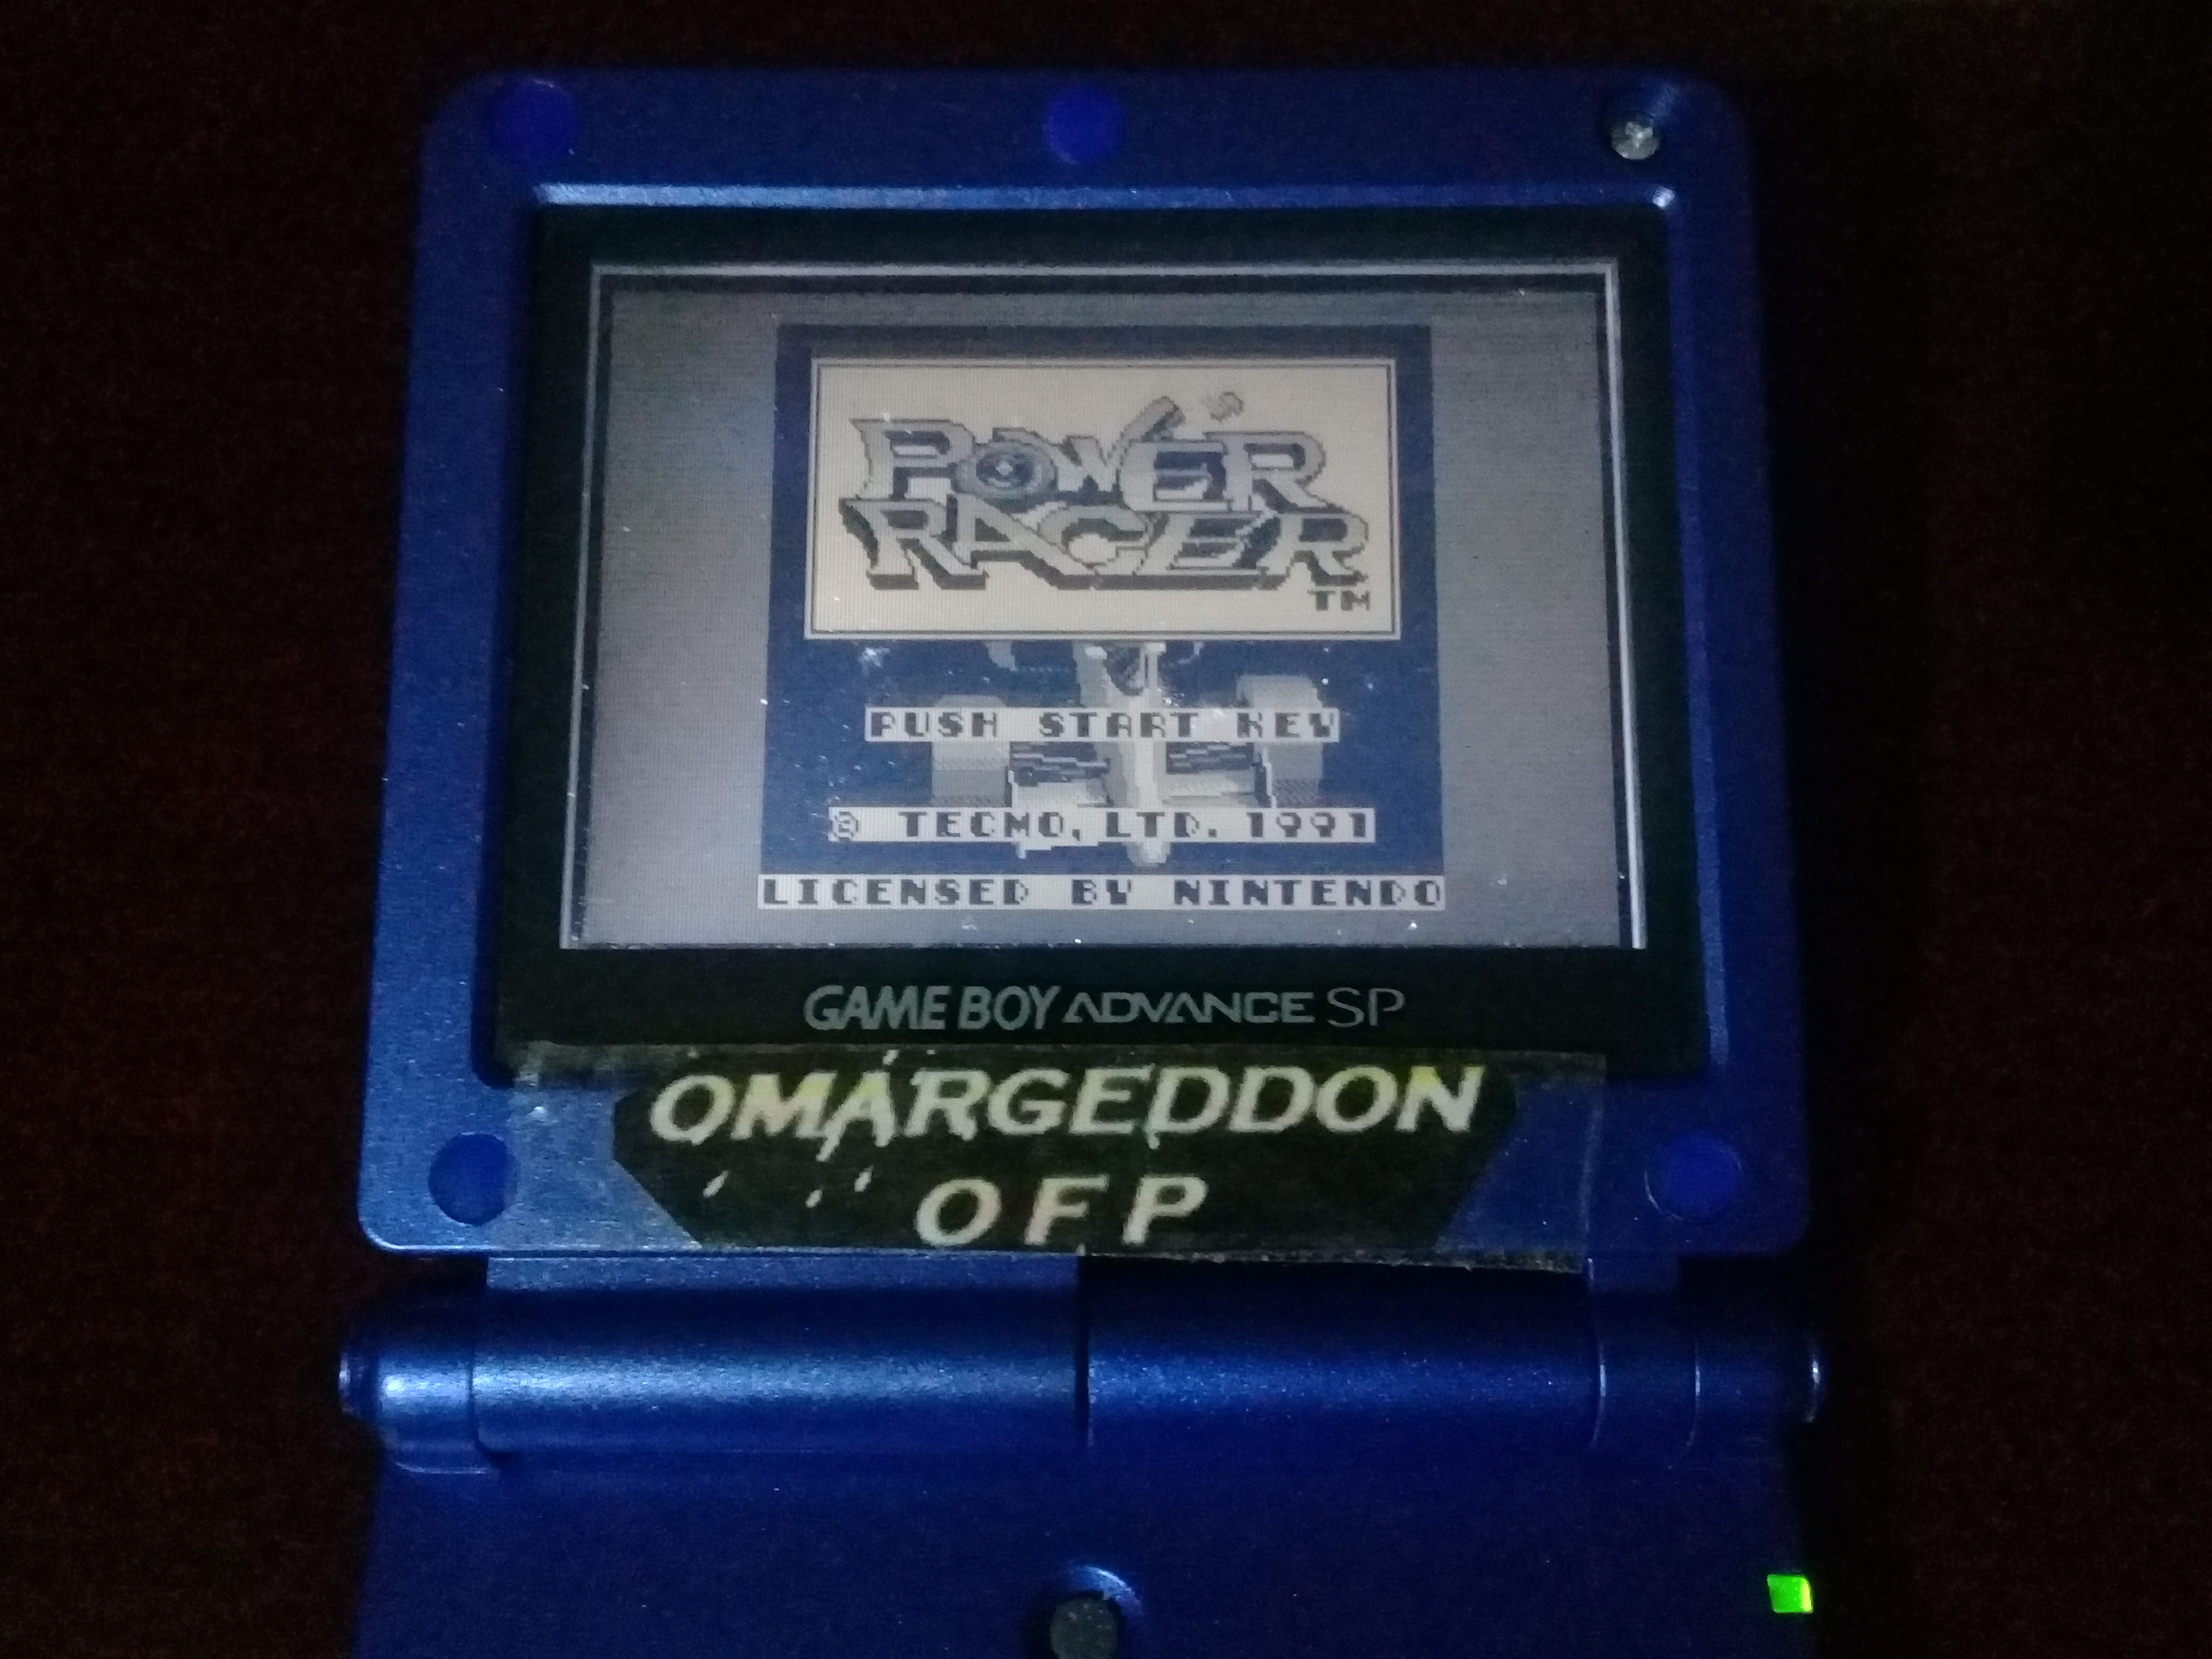 omargeddon: Power Racer (Game Boy) 159,900 points on 2020-12-28 21:04:51